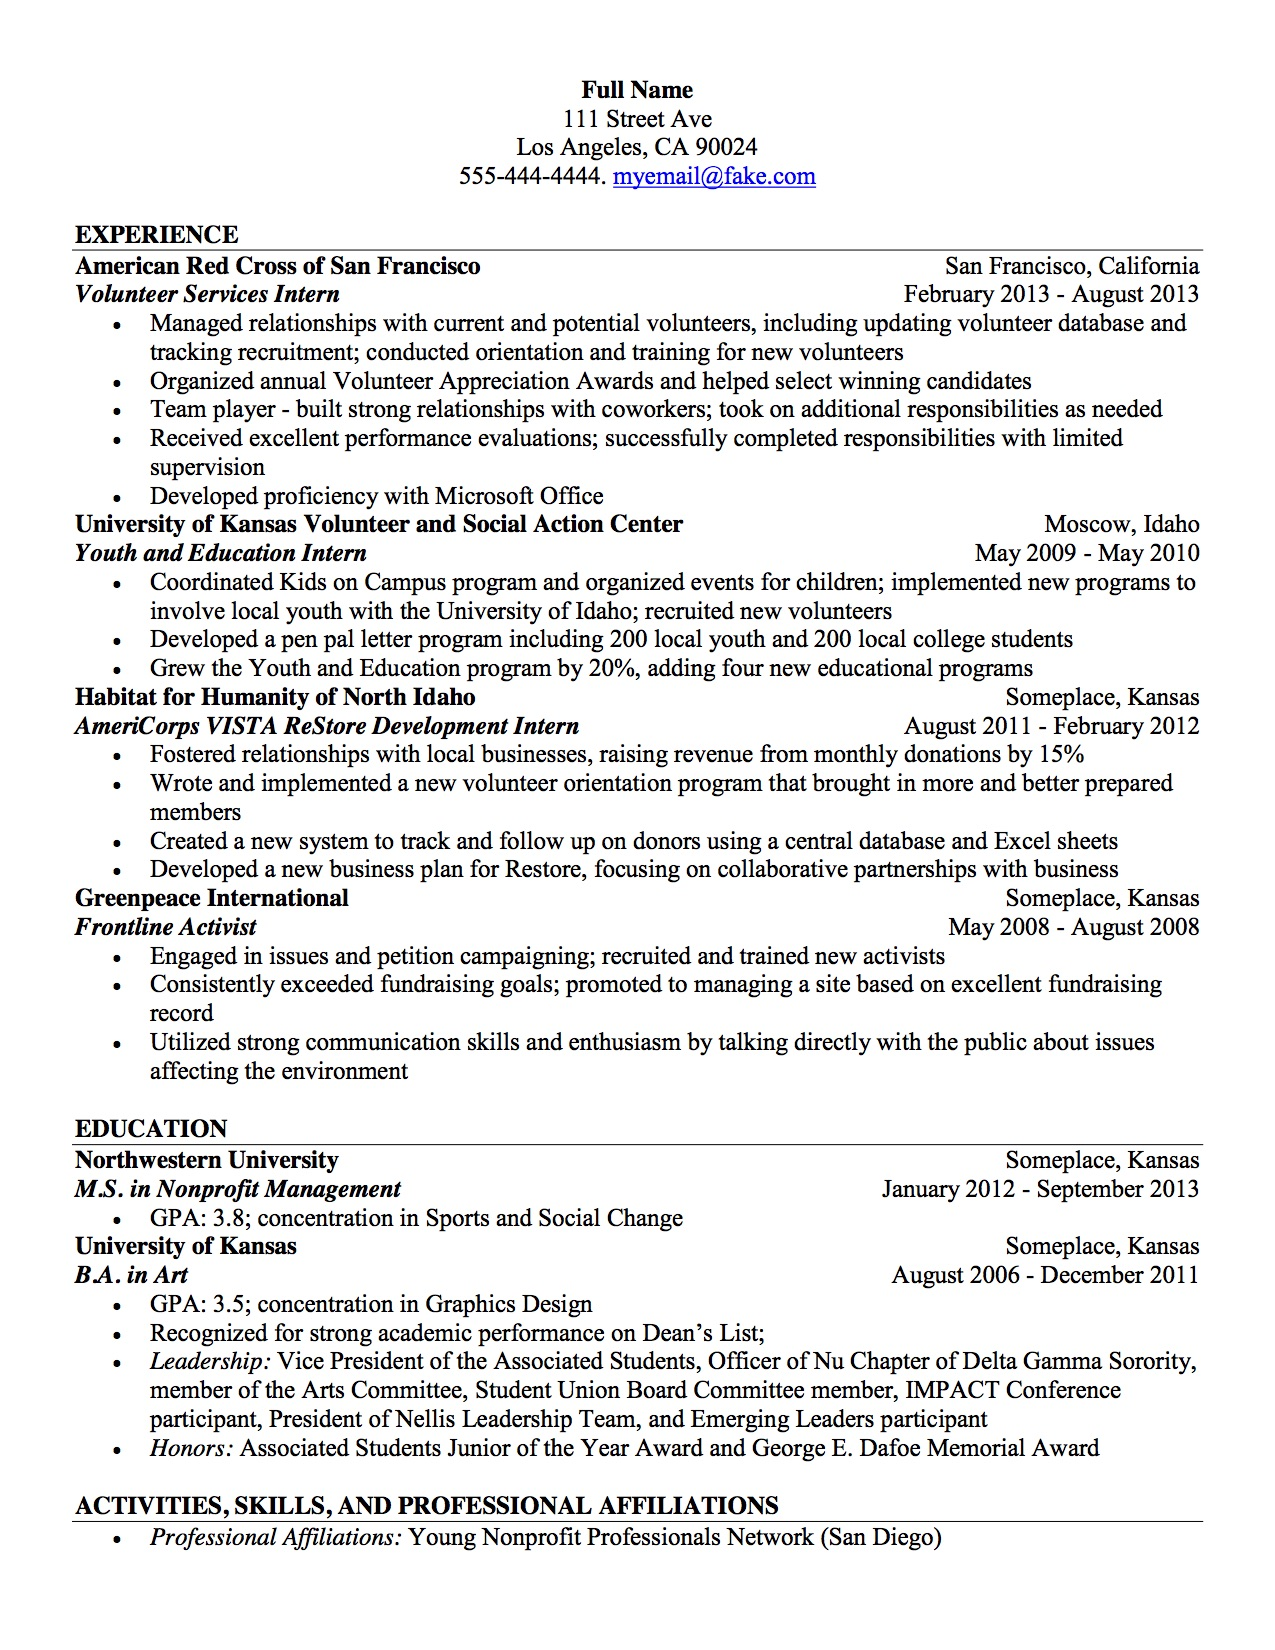 non profit management resume